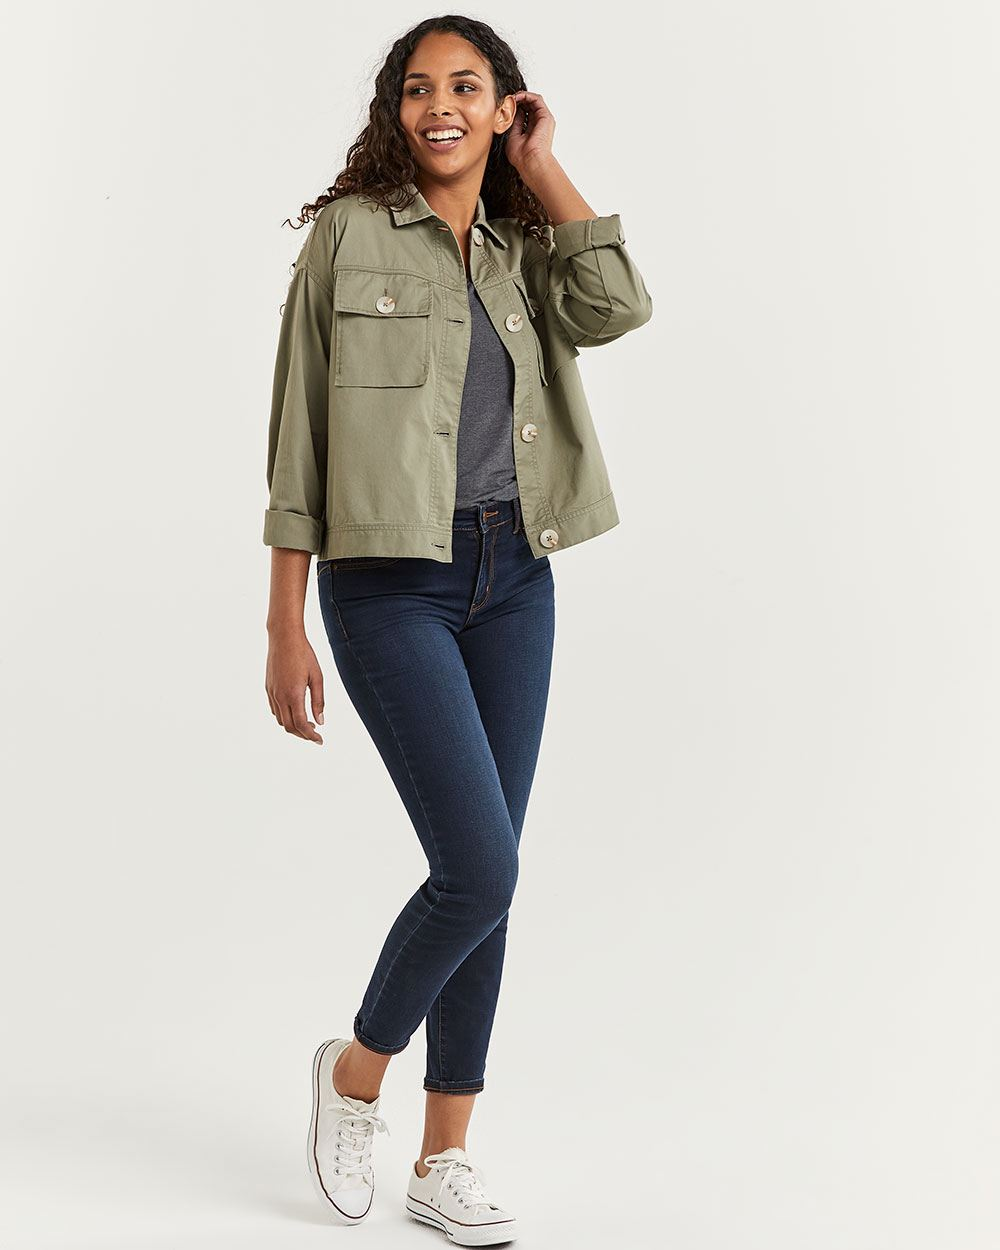 Cotton Jacket with Pockets